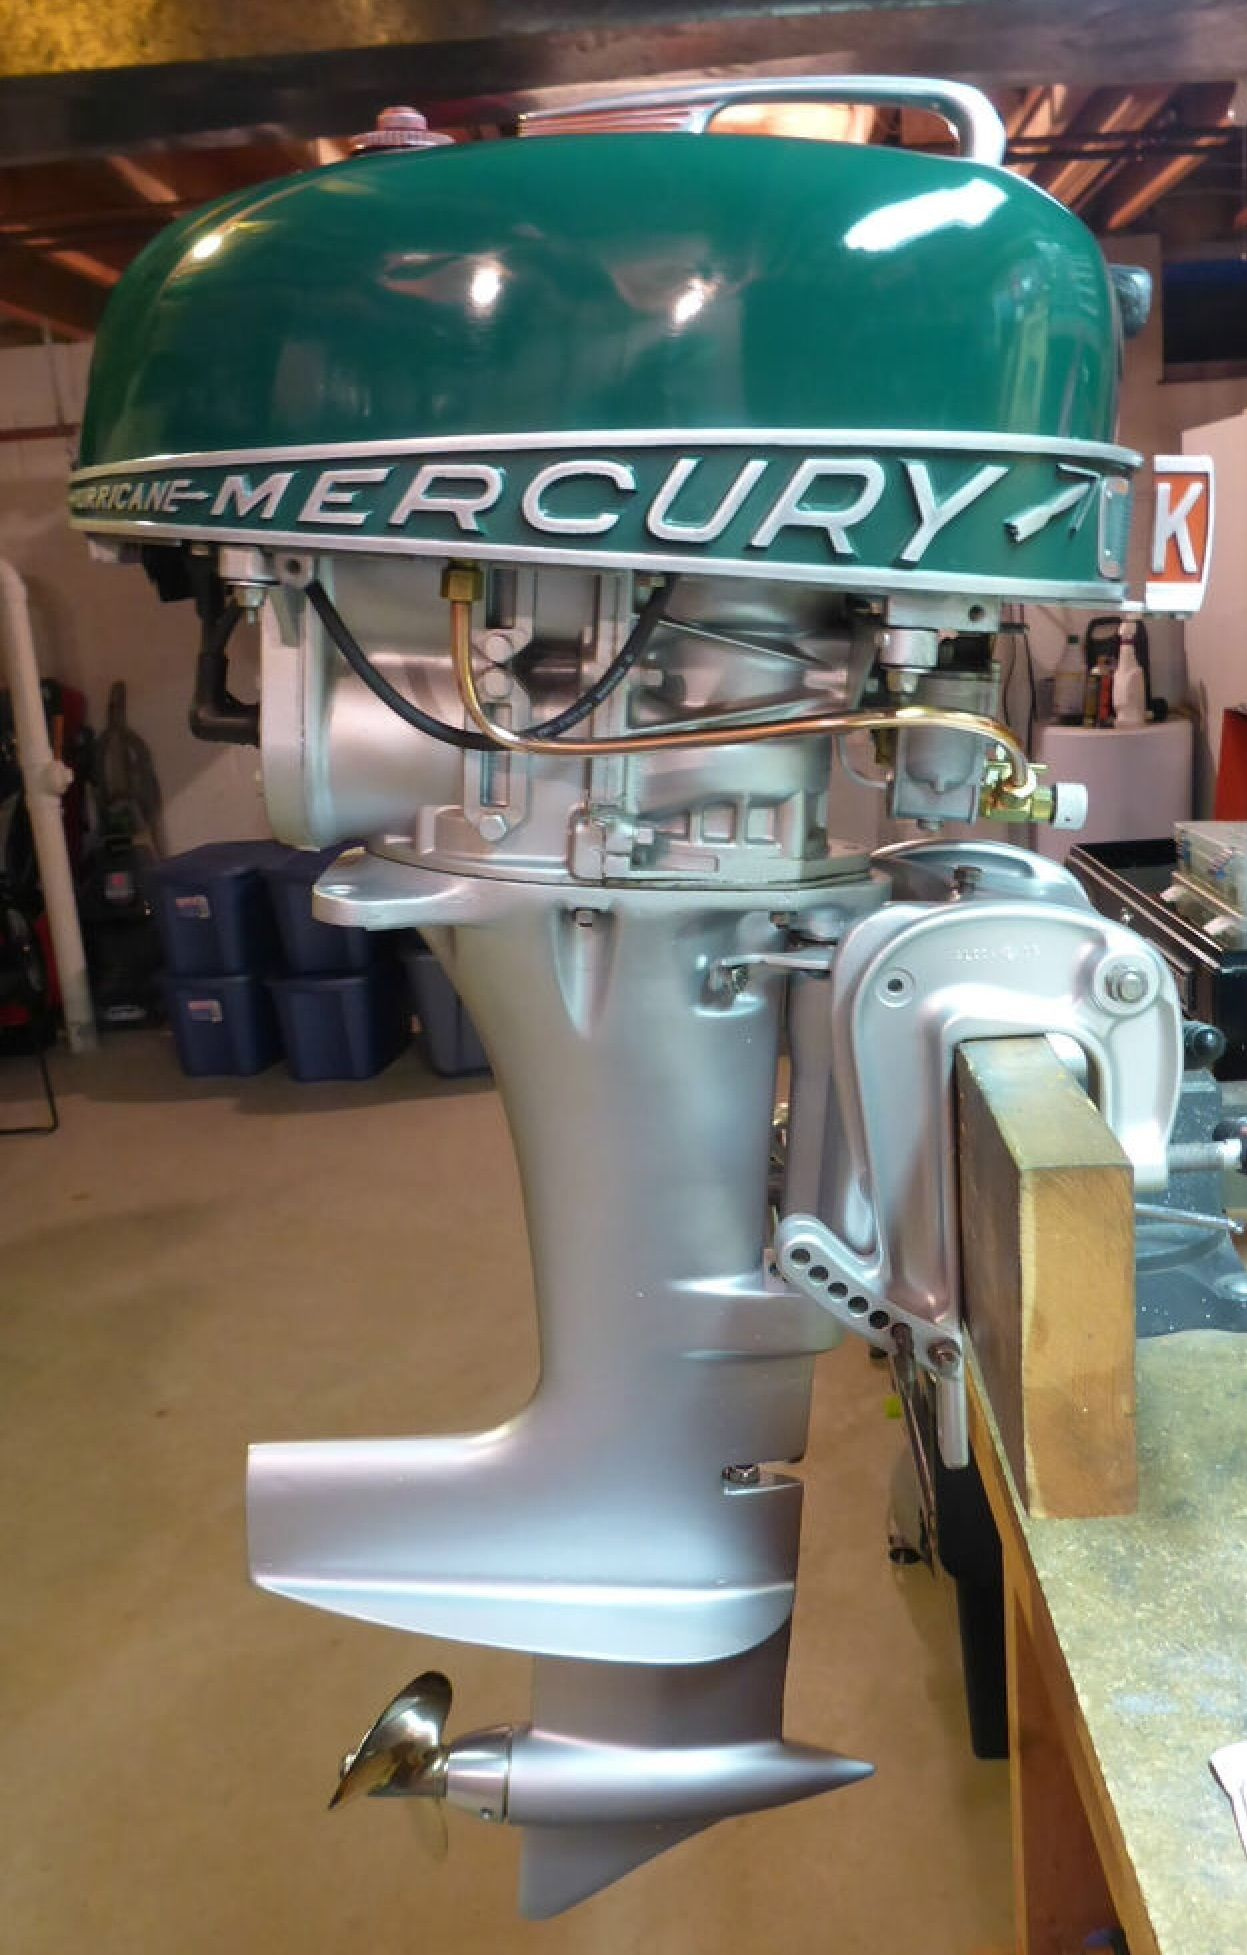 Mercury Outboard Motor Outboard Boat Motors Plywood Boat Plans Vintage Boats